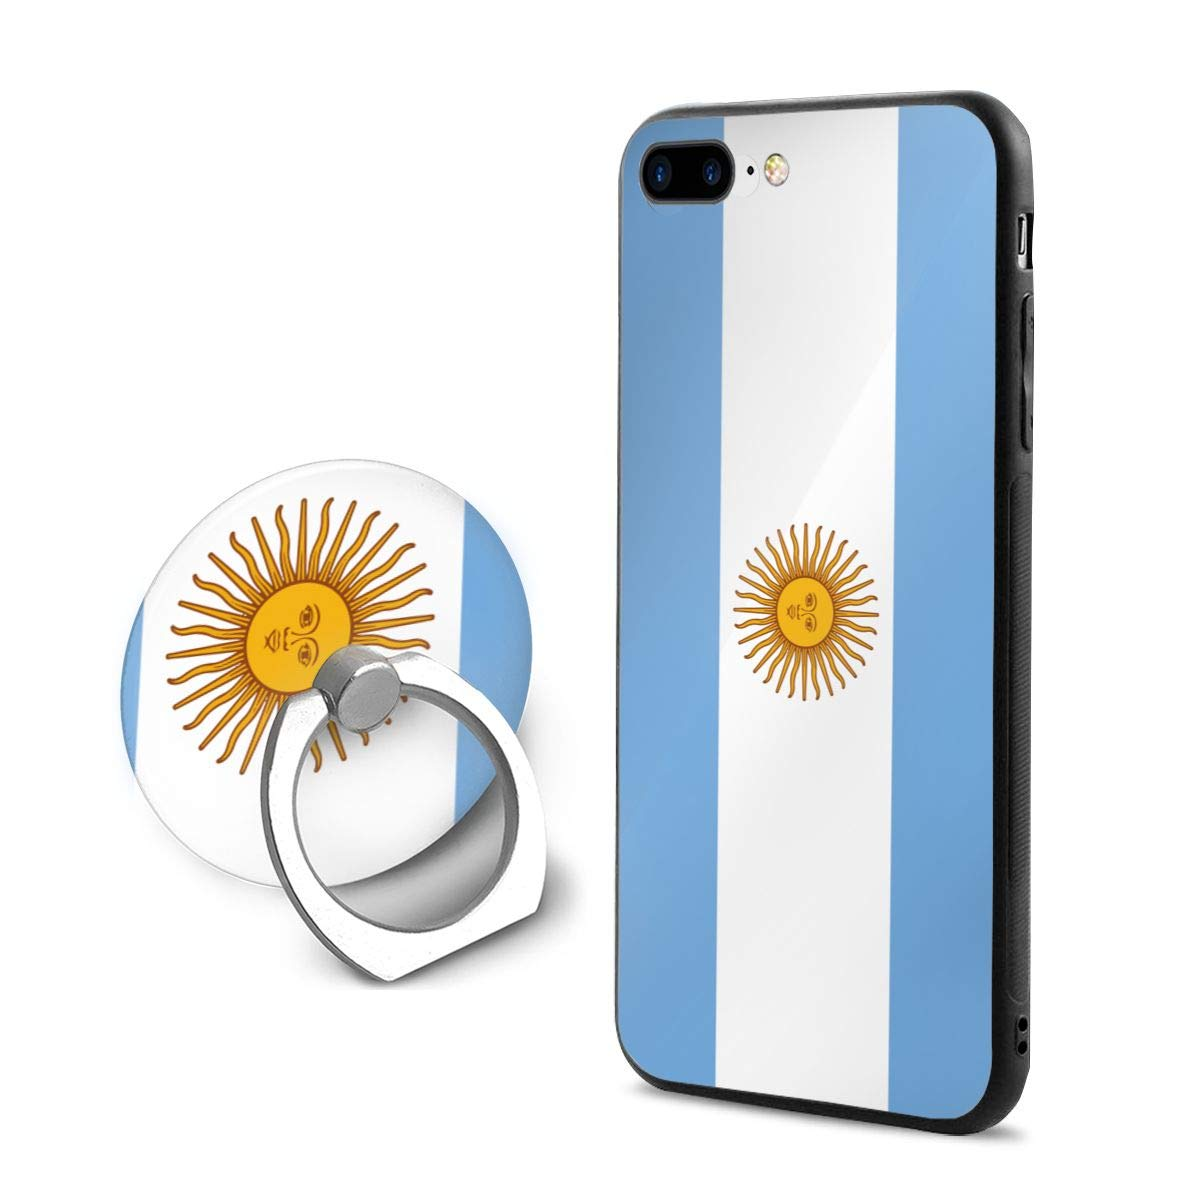 bbc9dcf62cc Flag of Argentina iPhone 7 Plus Case, iPhone 8 Plus Case, and Finger Ring  Holder Kickstand Full Protective Anti-Scratch Cover Case for iPhone 8 Plus/ iPhone ...